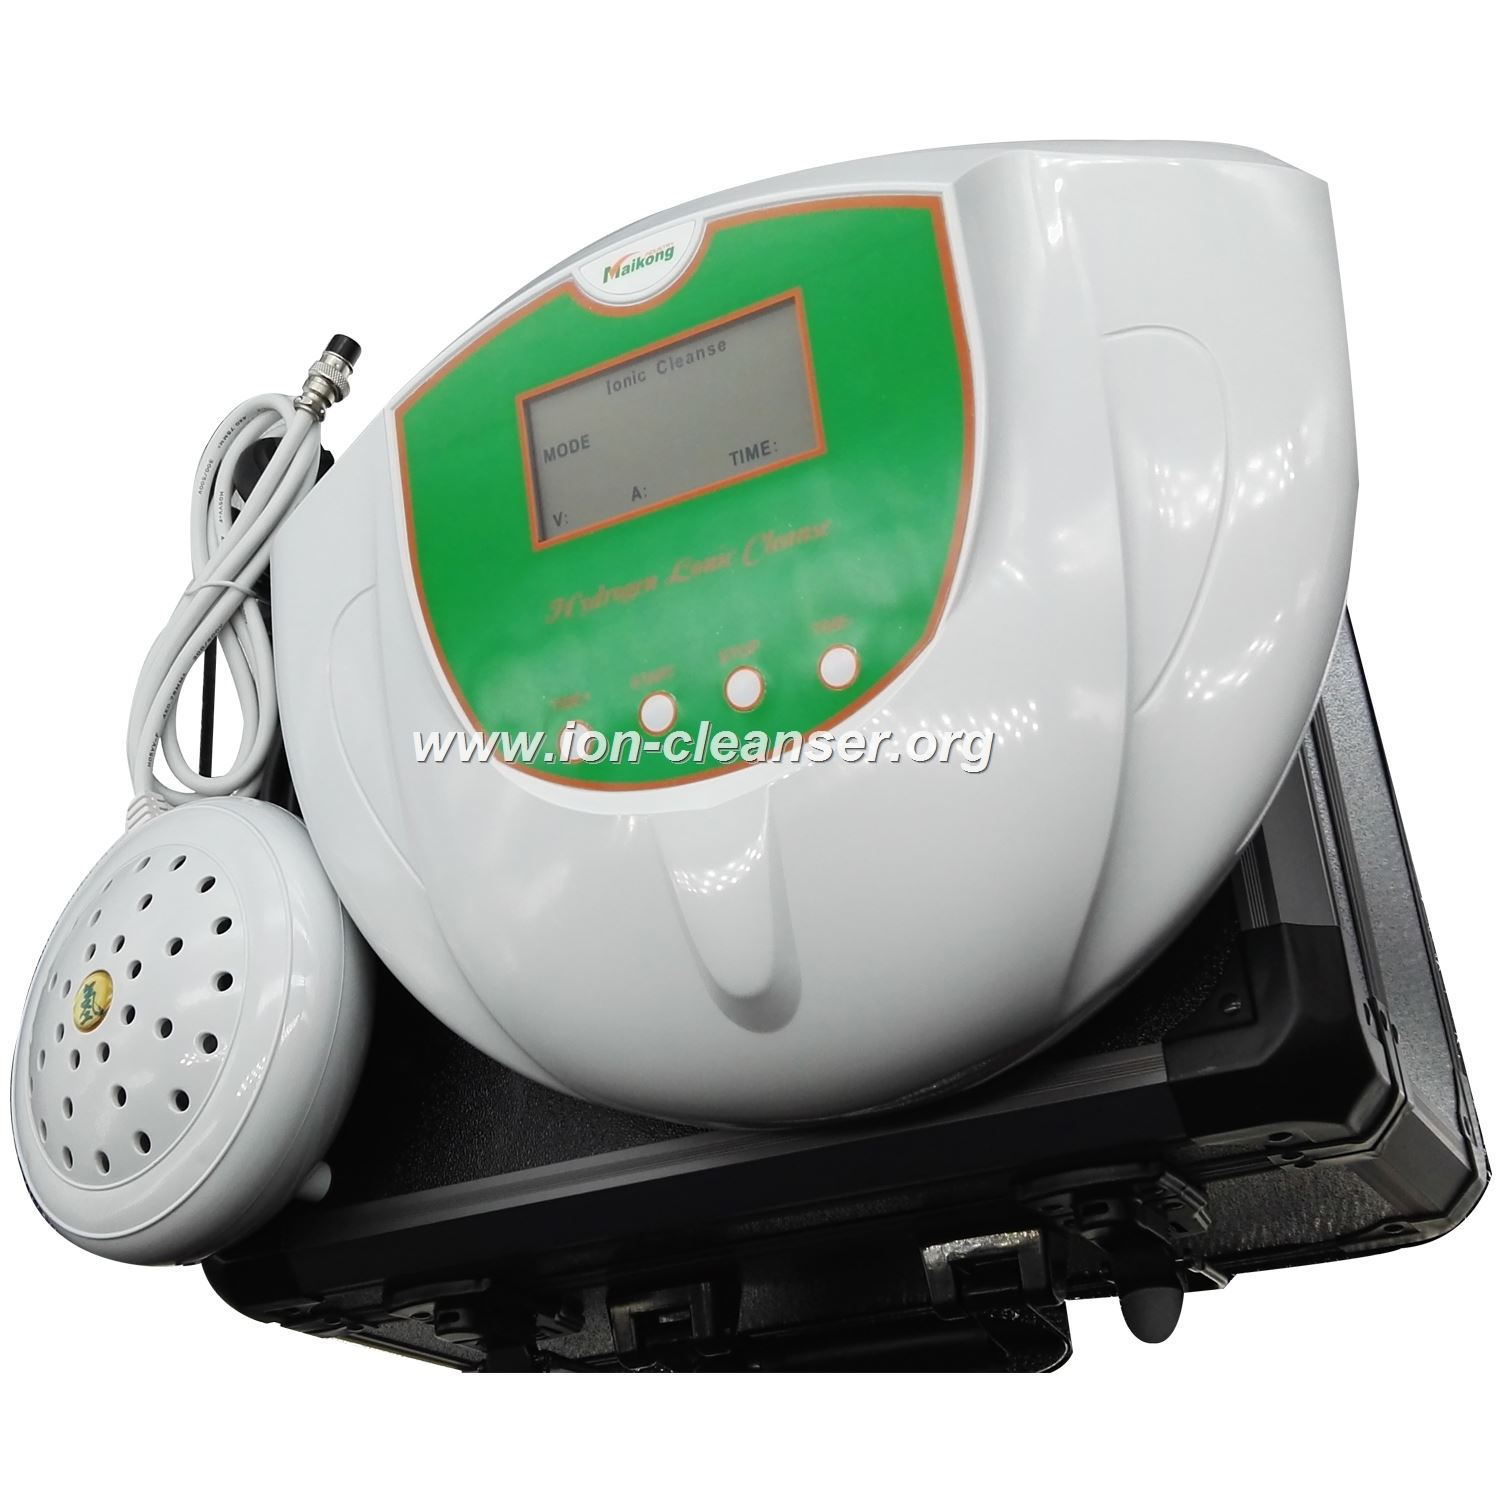 Care Of Foot SPA Machine Tools Supplies And Equipment